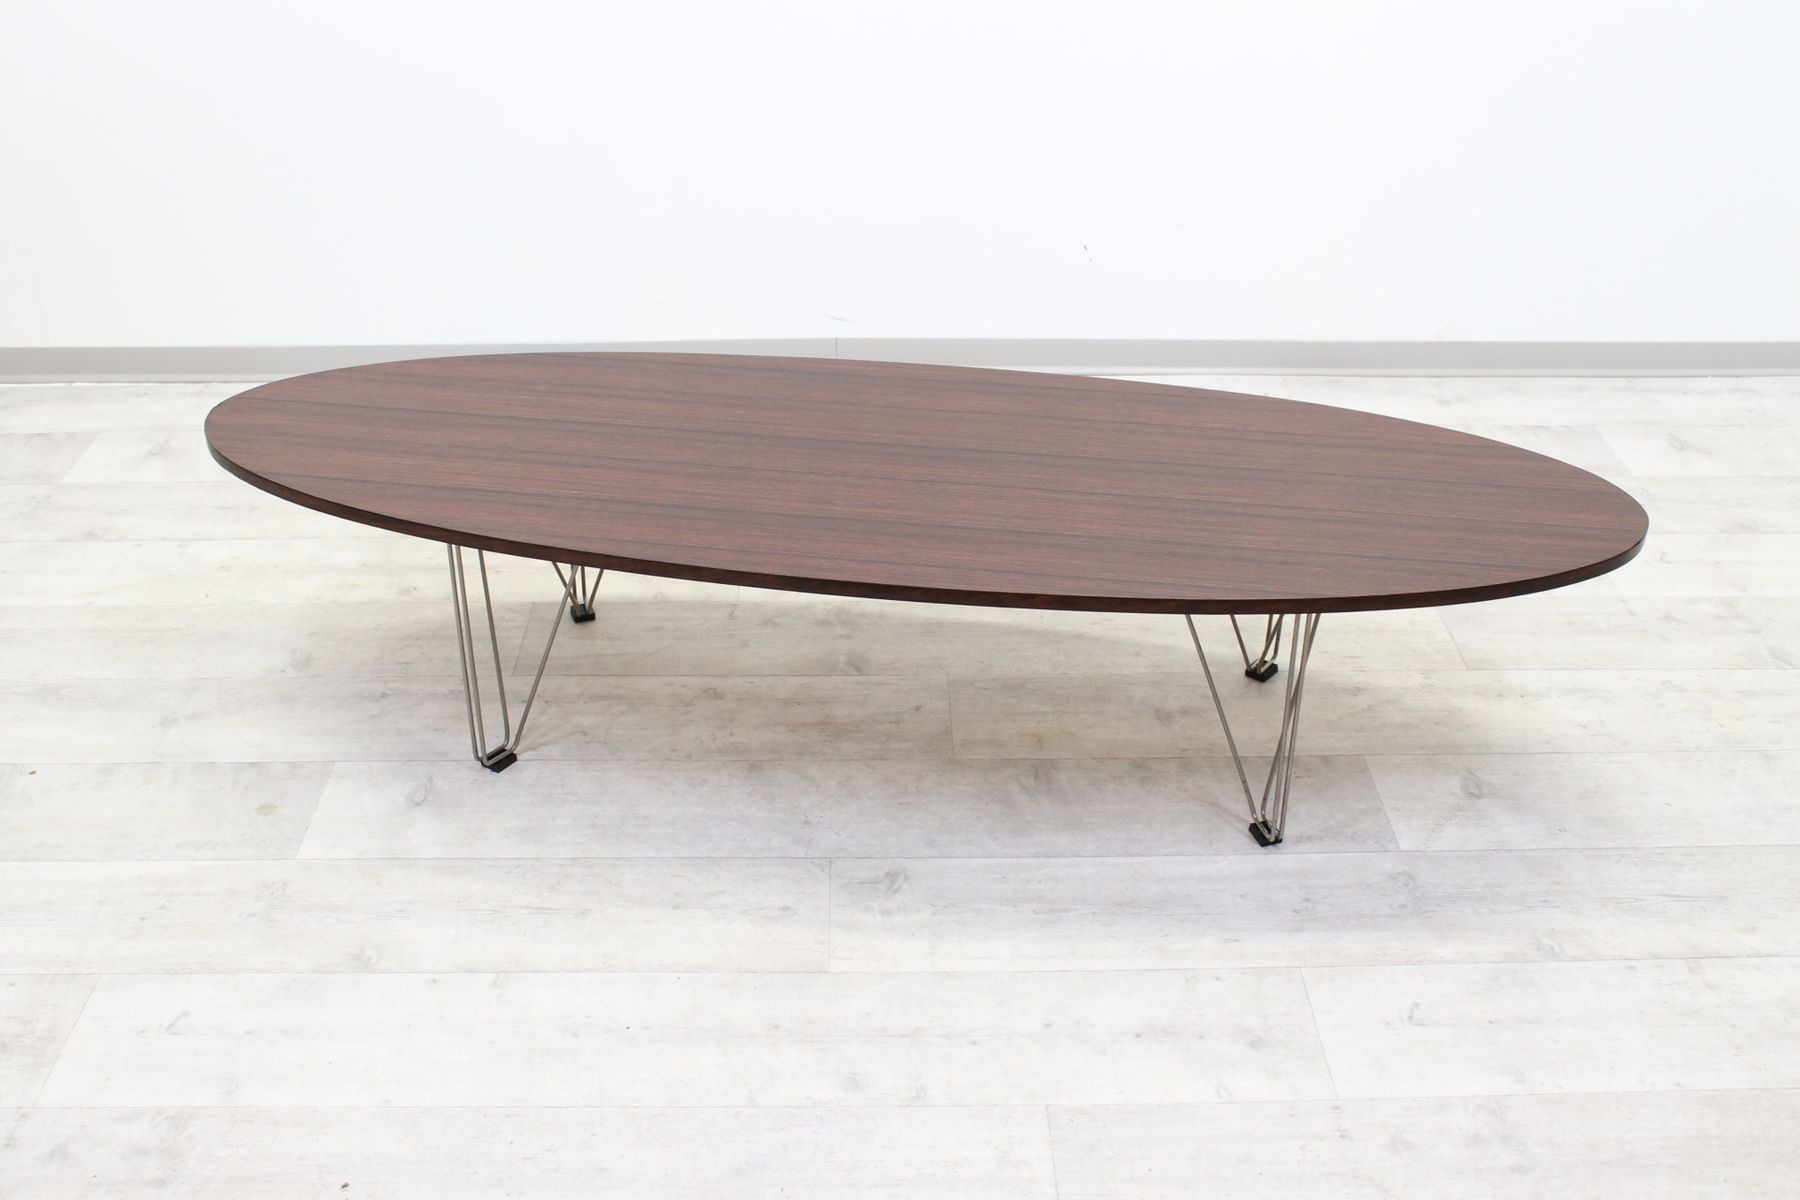 Vintage Italian Oval Design Coffee Table 1970s For Sale At Pamono